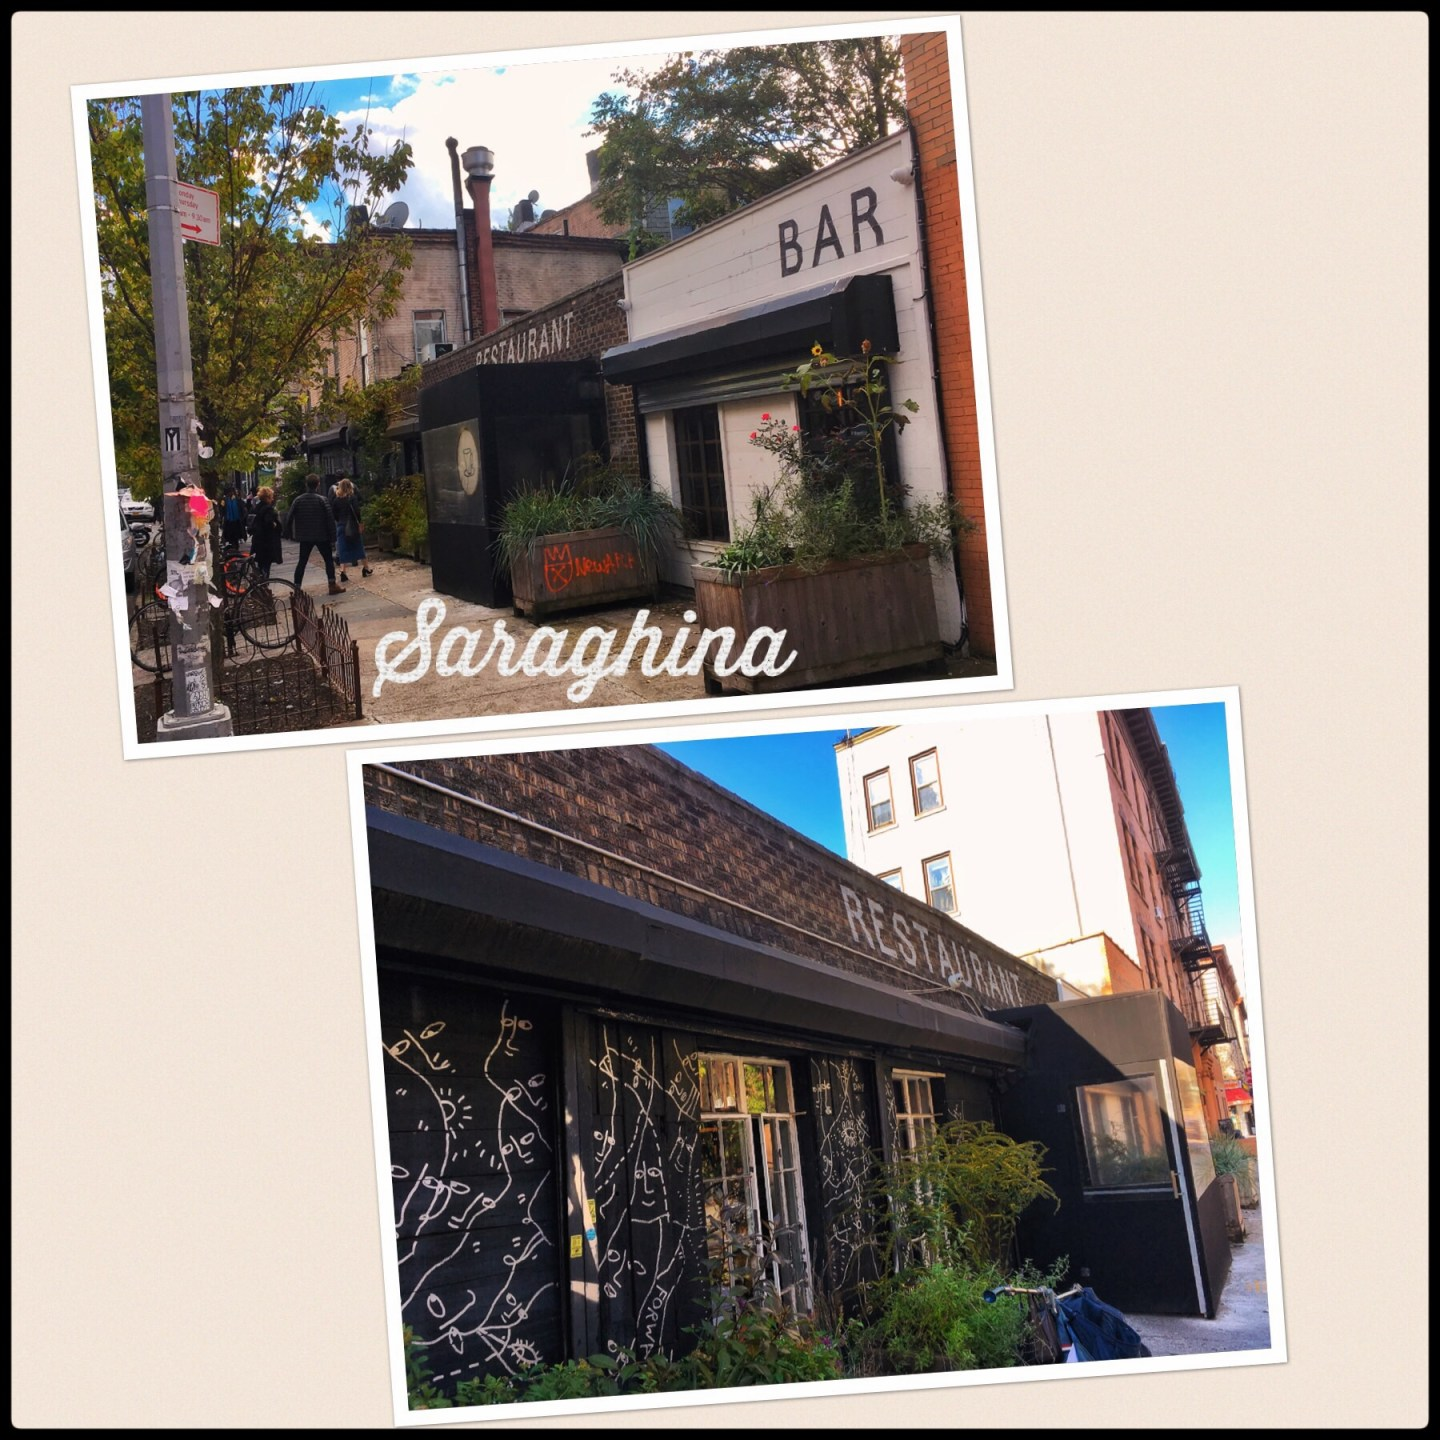 Saranghina in Bed Stuy inspired by You set in New York City